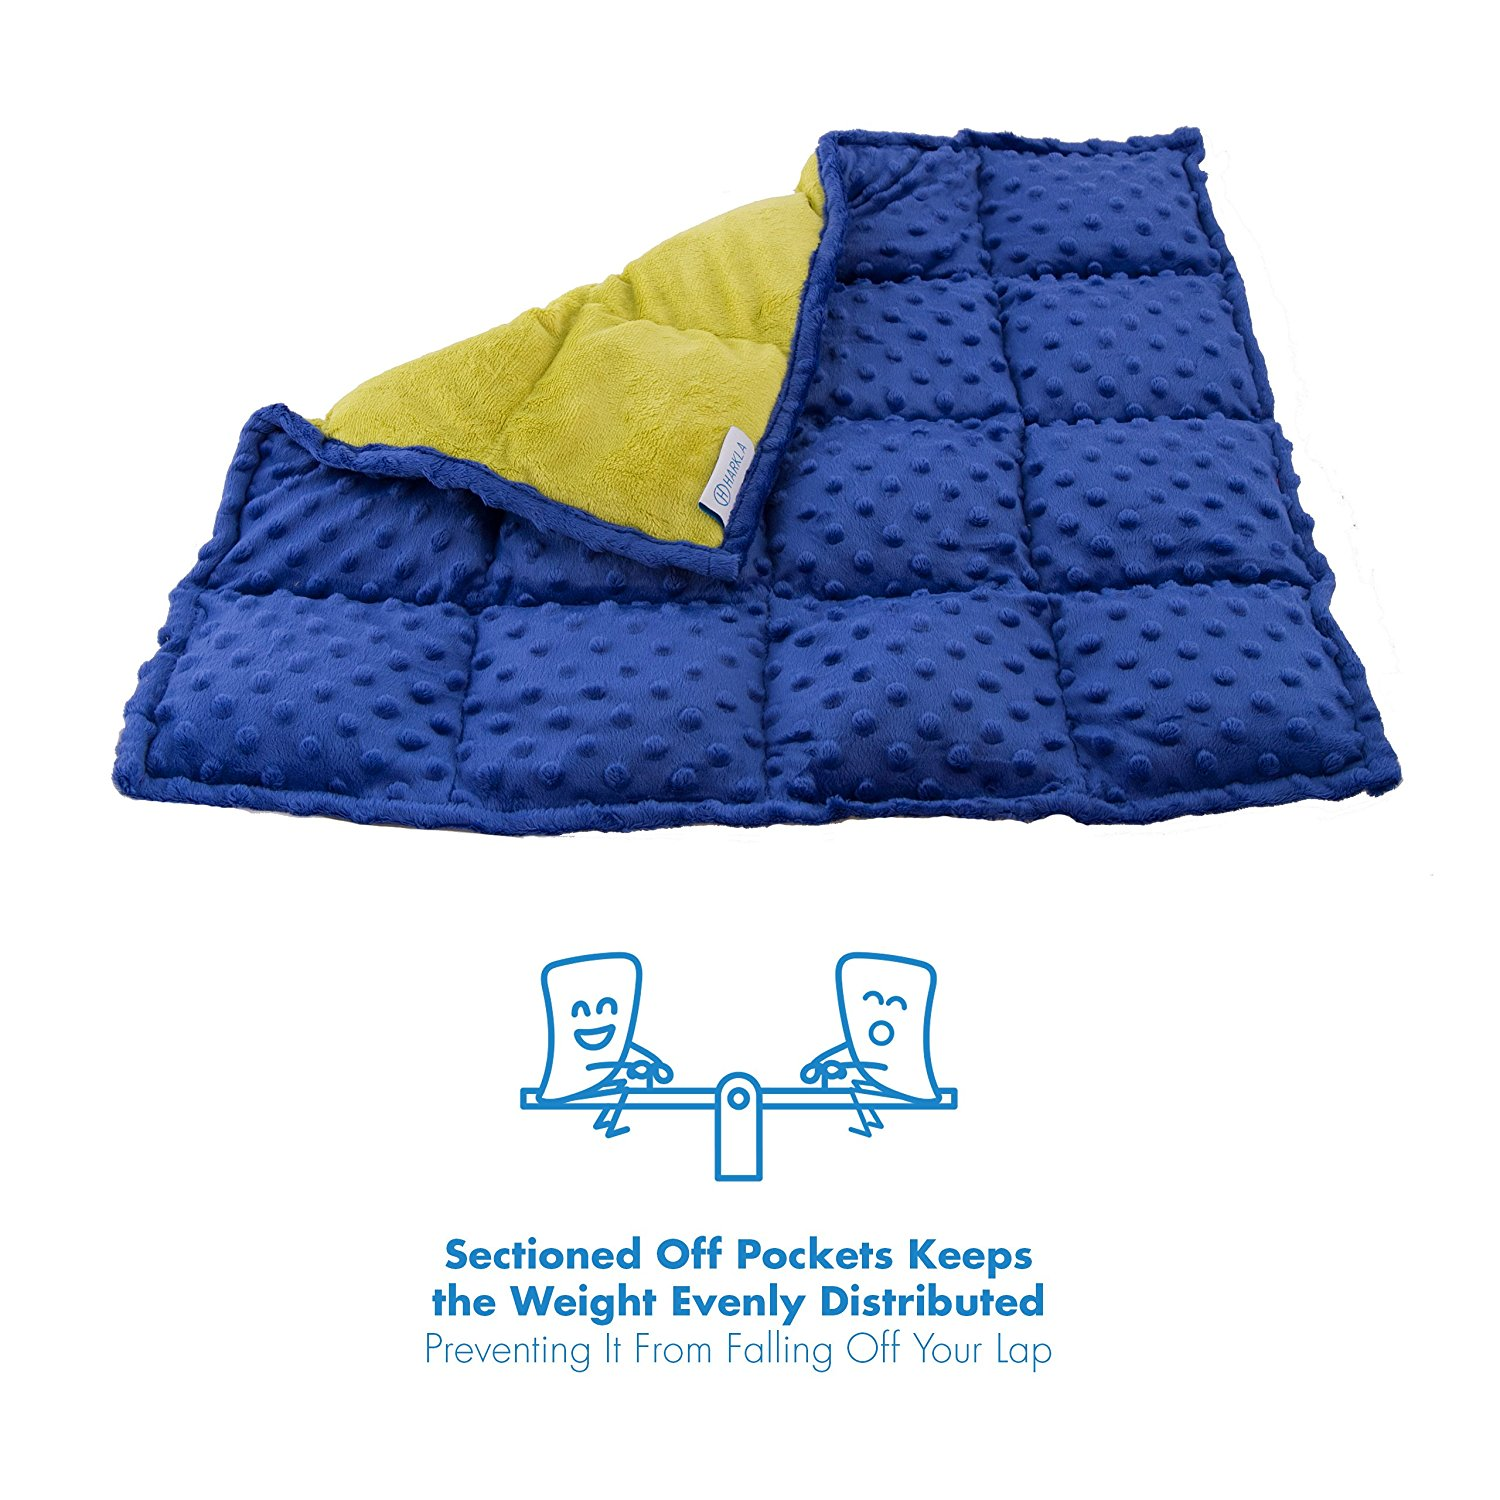 - I am LOVING this textured weighted lap blanket by Harkla